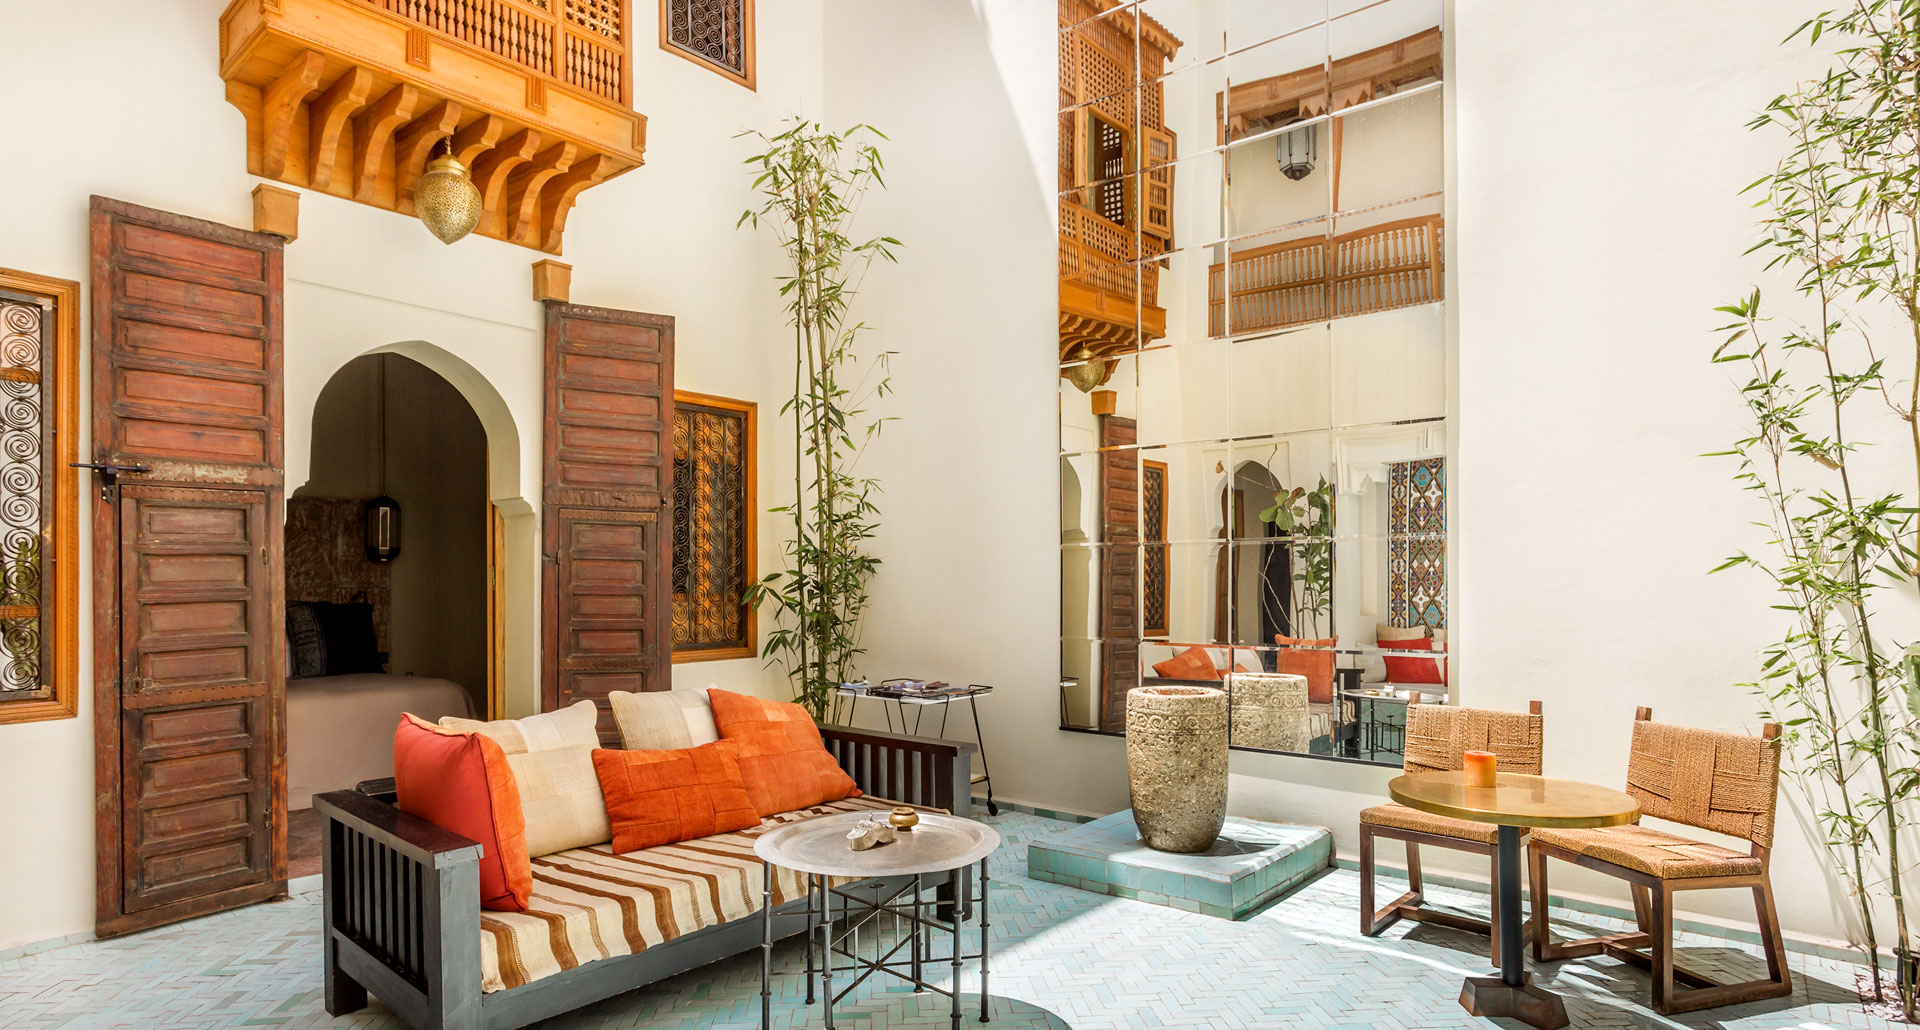 Ryad Dyor - boutique hotel in Marrakech